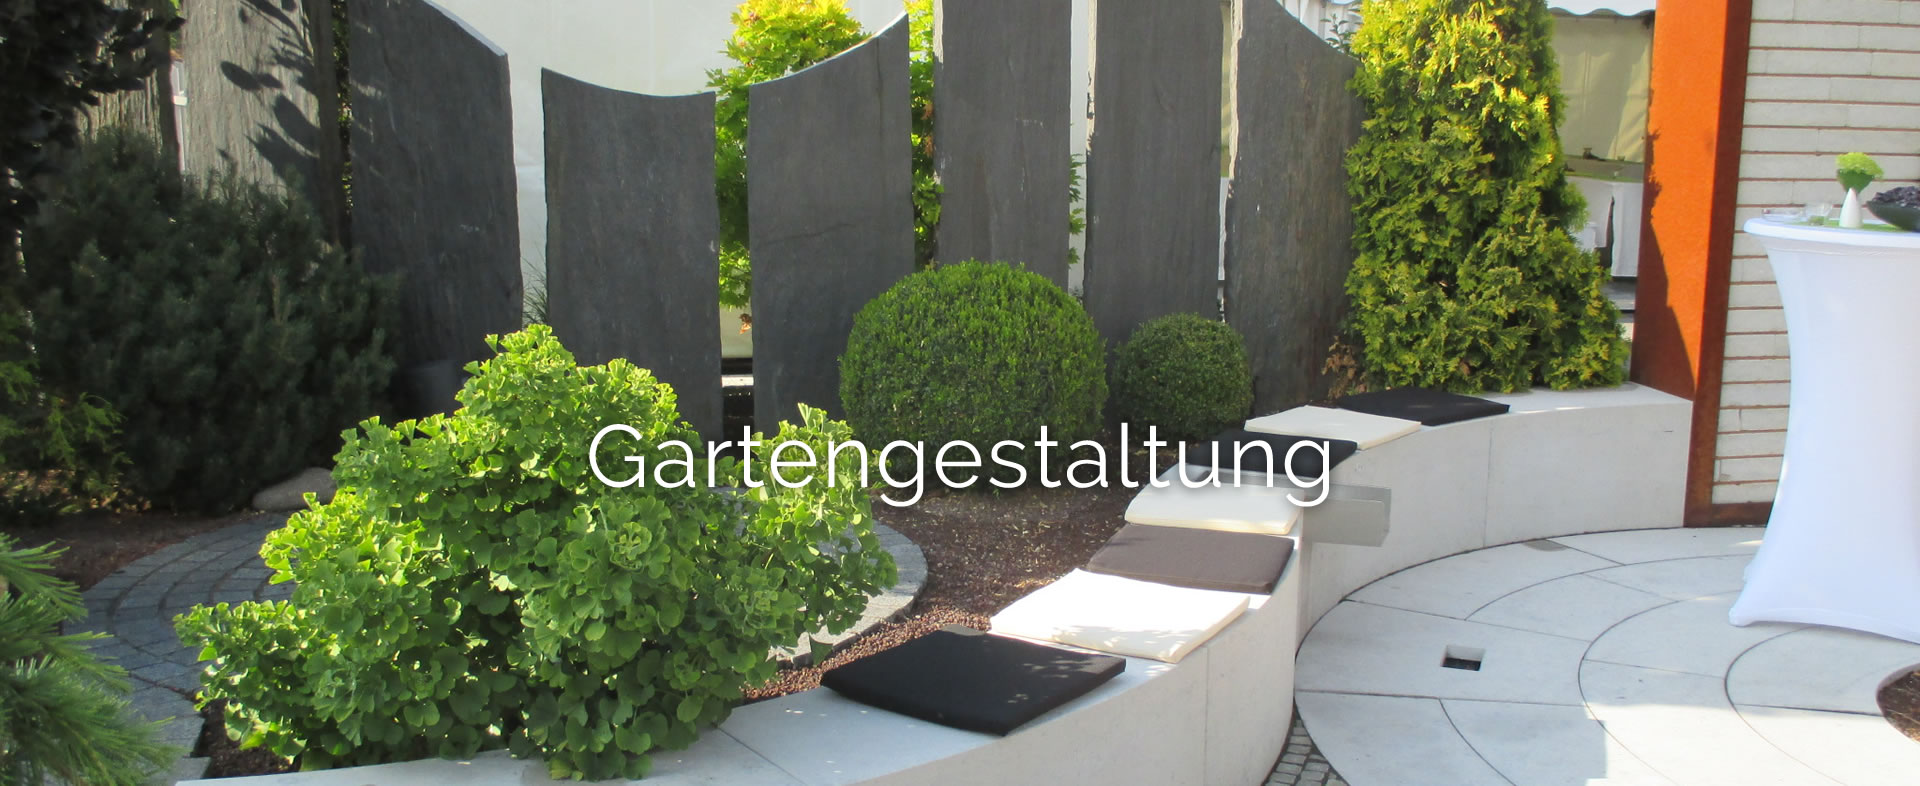 martin krickl gartengestaltung markgr ningen gartenbau ludwigsburg vaihingen bietigheim. Black Bedroom Furniture Sets. Home Design Ideas